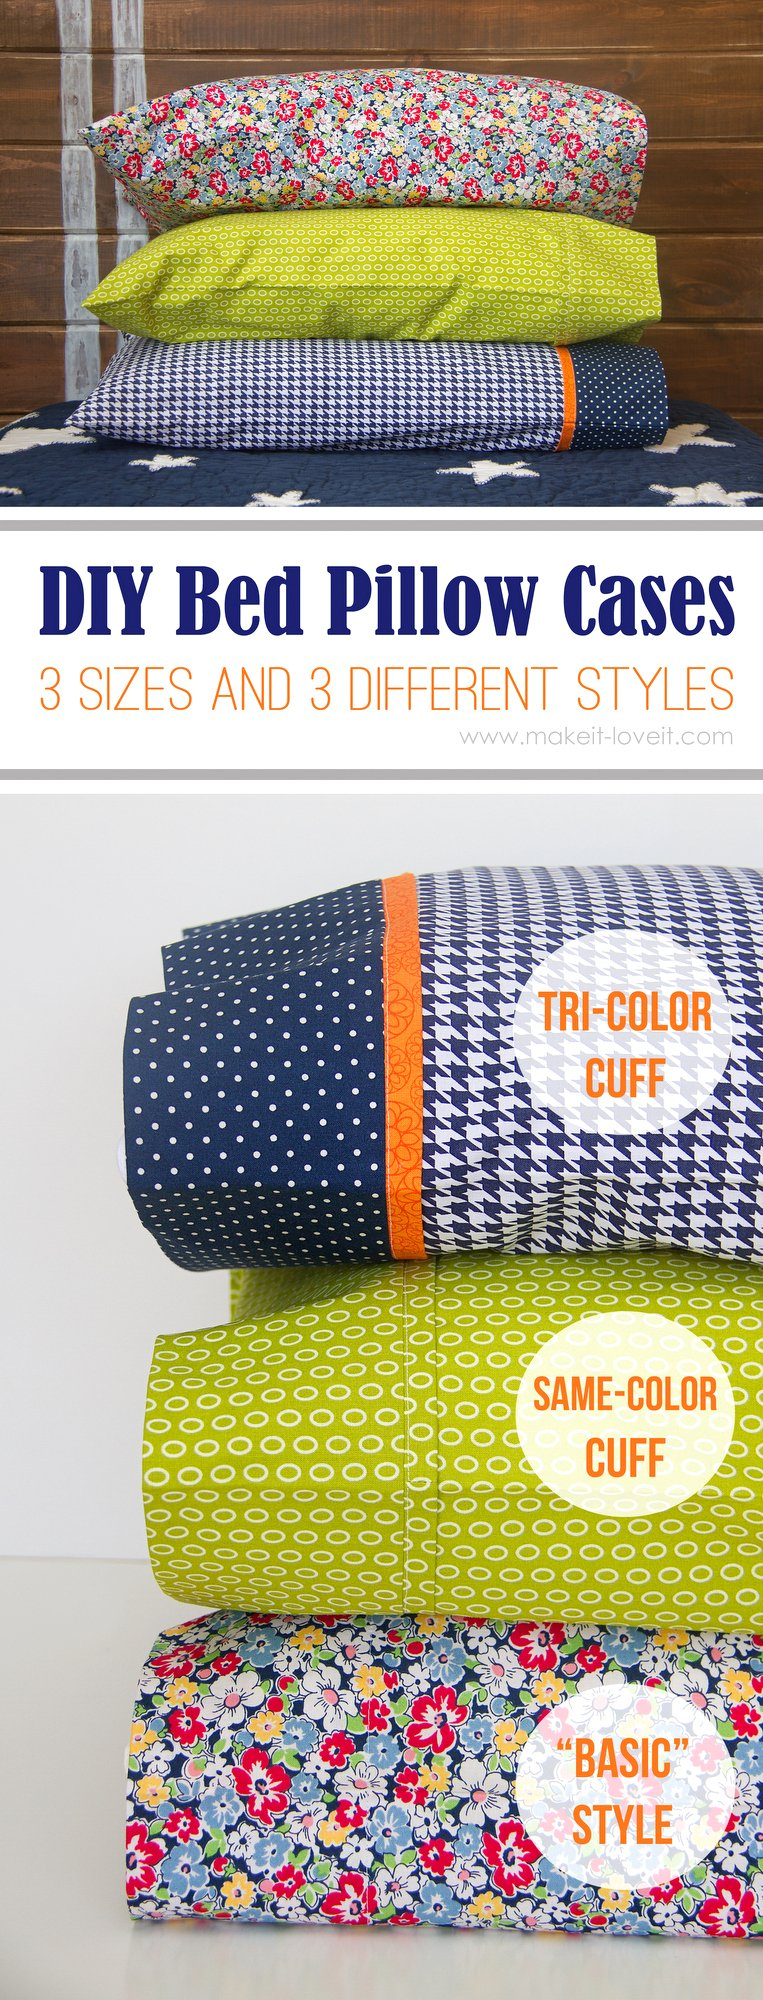 "DIY Bed Pillow Cases: 3 sizes and 3 different styles (including the ""burrito"" method) 